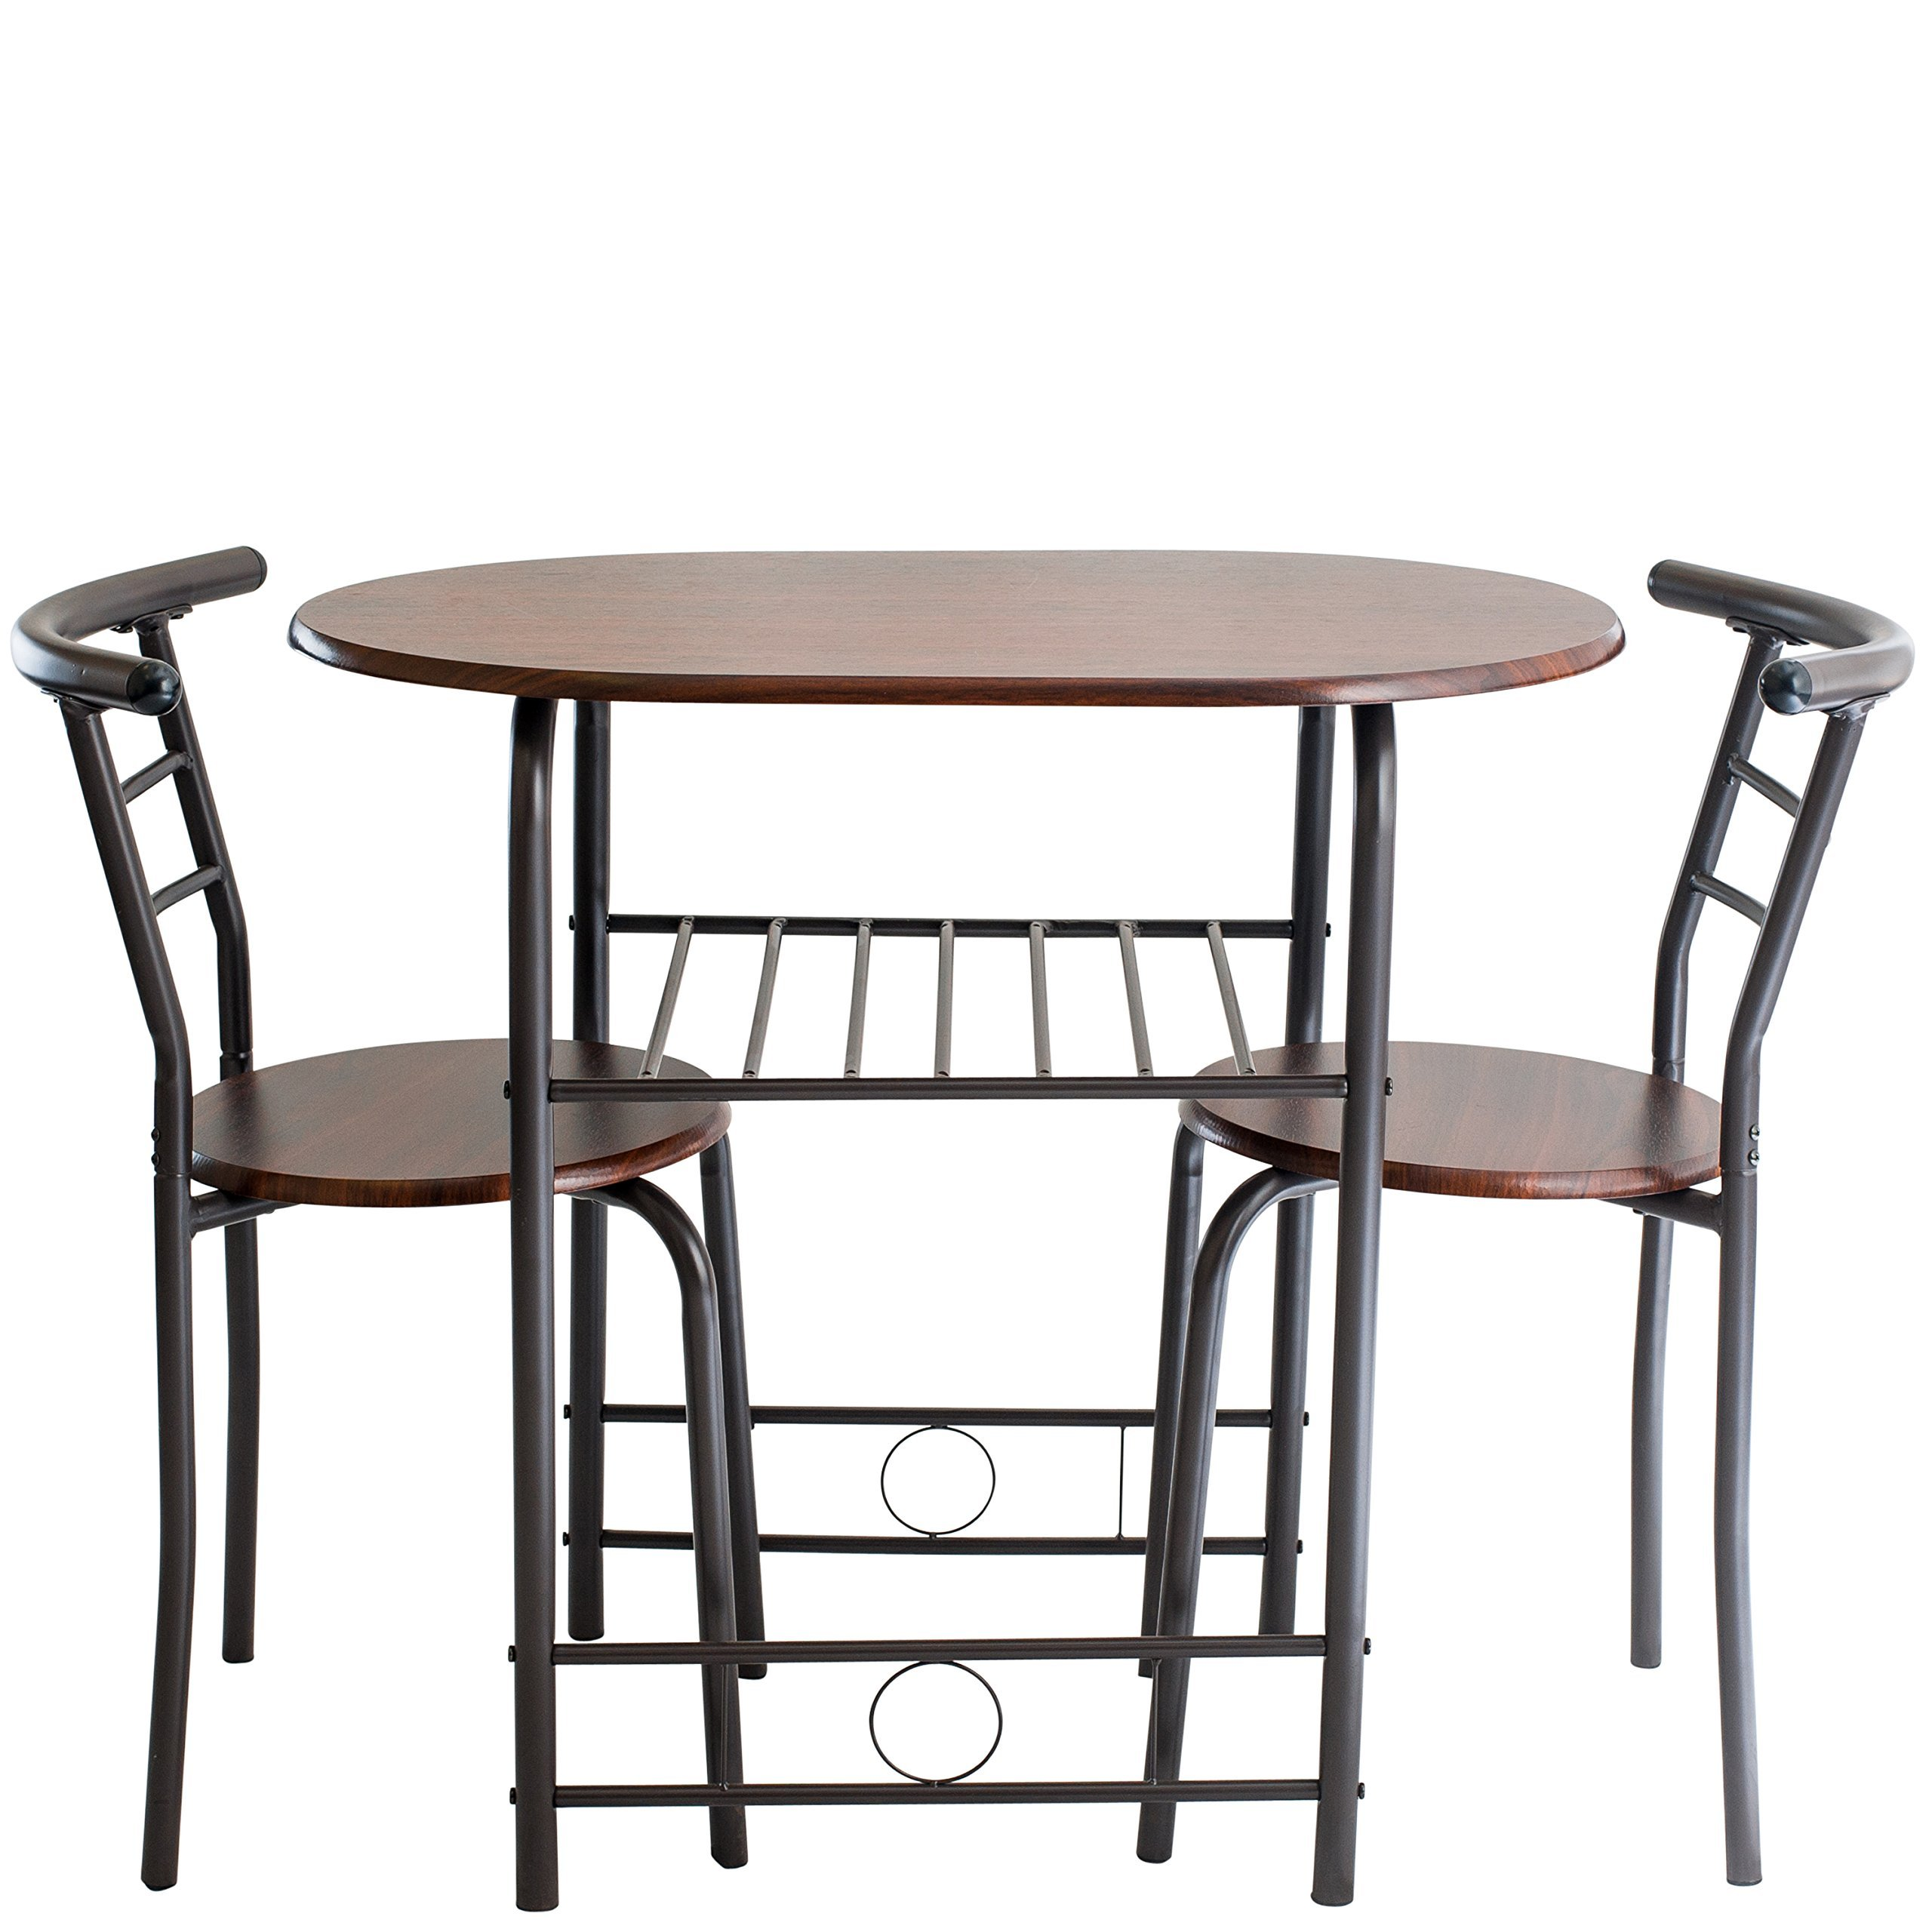 Handi-Craft 725791821077 3 Piece Compact Dining Set with Table and Matching Chairs, Dark Walnut